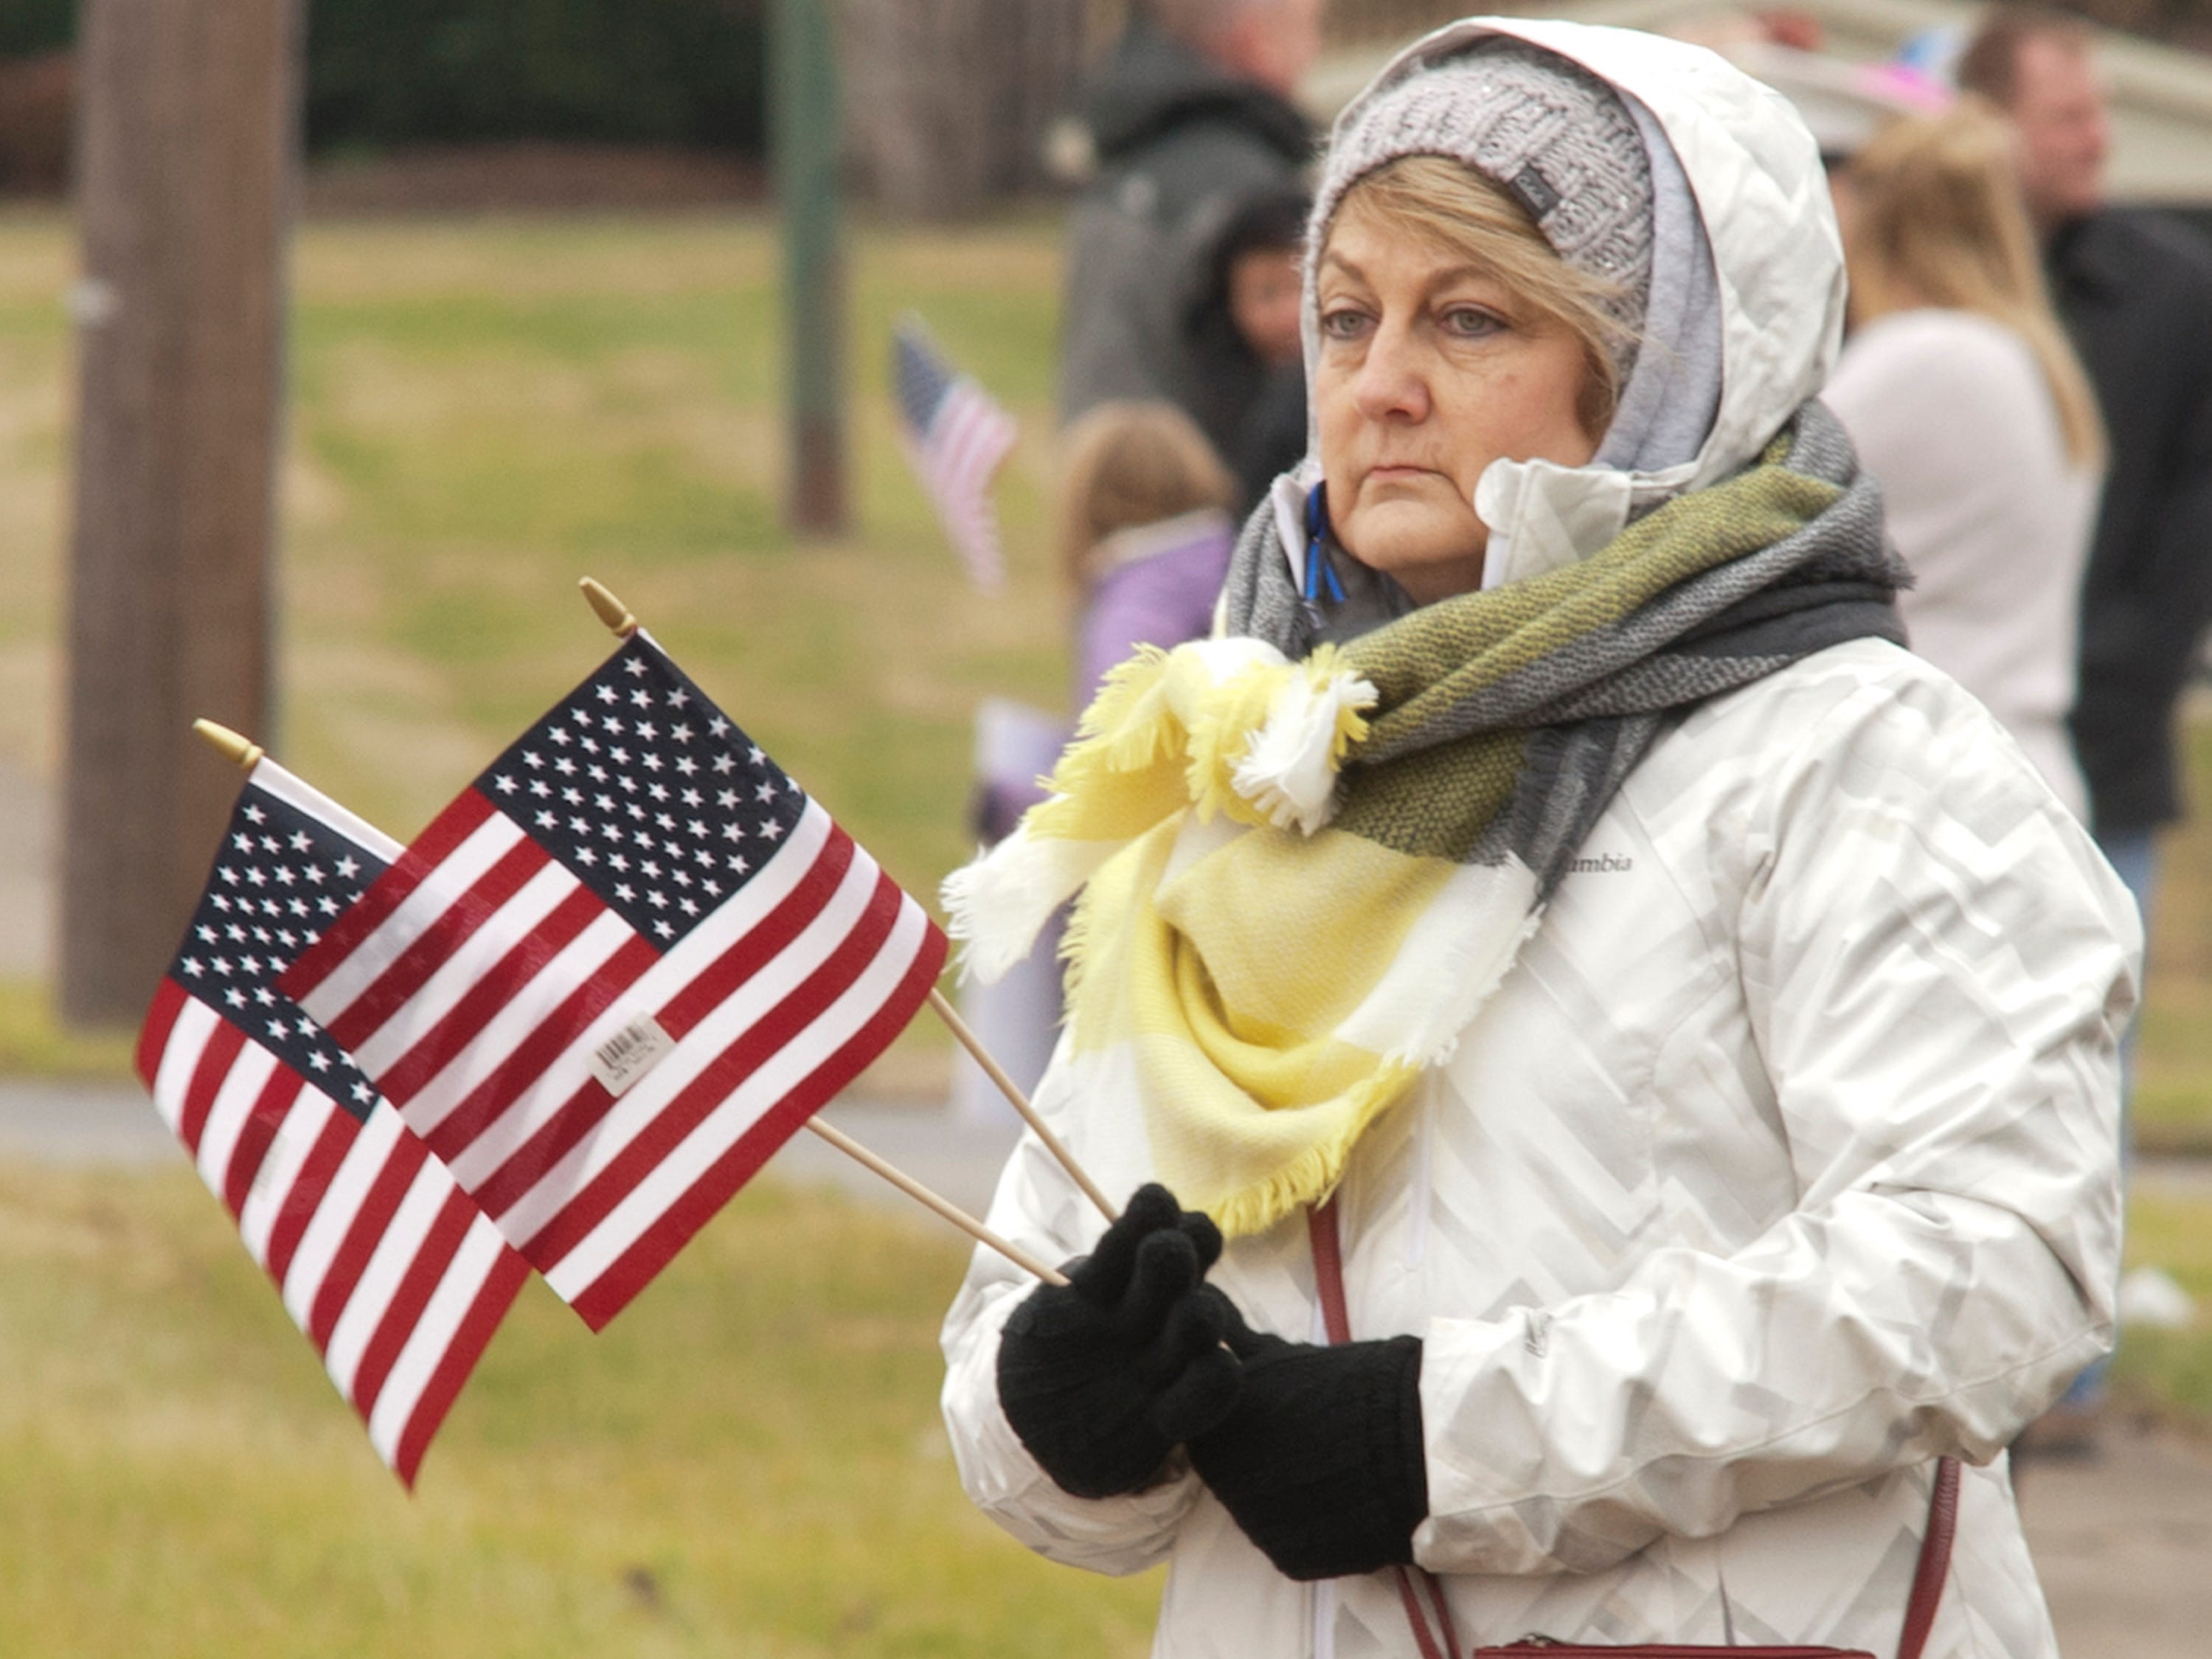 Vicki Yates of Hikes Point awaits the procession of LMPD Detective Deidre Mengedoht as it turns onto Bardstown Road. Yates gave out U.S. flags to others on the street who had come out to pay their respects to Mengedoht. Yates' daughter, Allison Grider, trained in the same cadet class as Mengedoht, and Yates' daughter and son both serve in LMPD's 7th Division. 29 December 2018